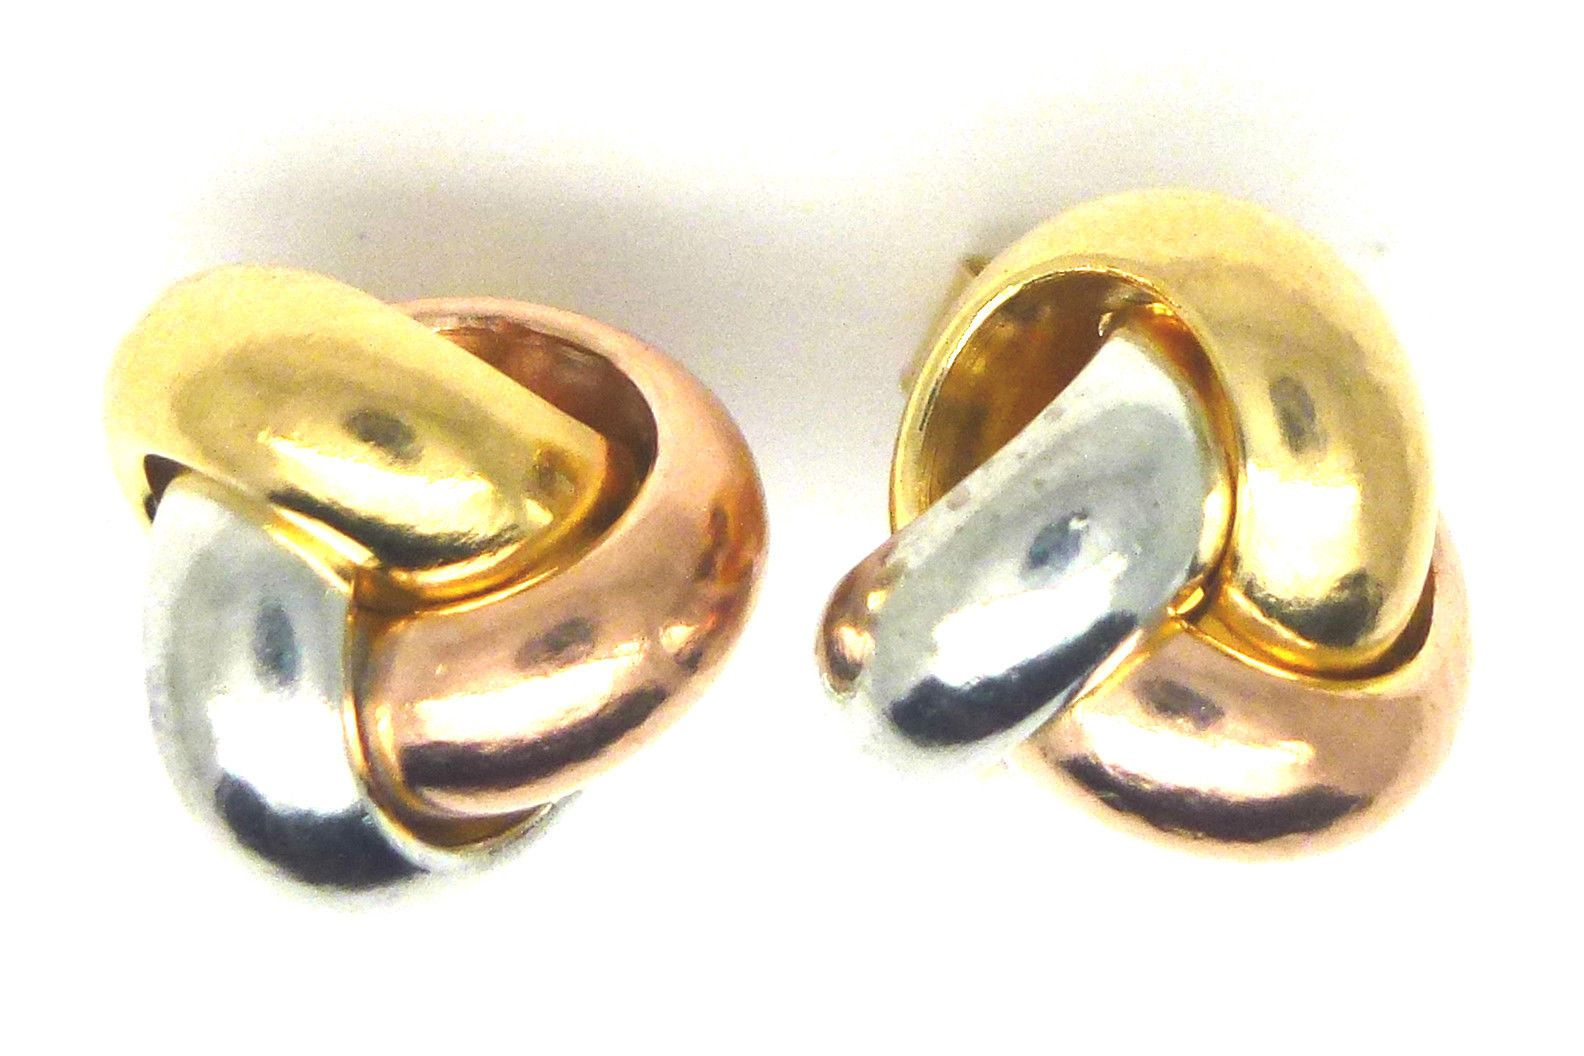 96b9f26a8 9ct Three Colour Gold Three Way Knot Stud Earrings 6249 - 121691944487